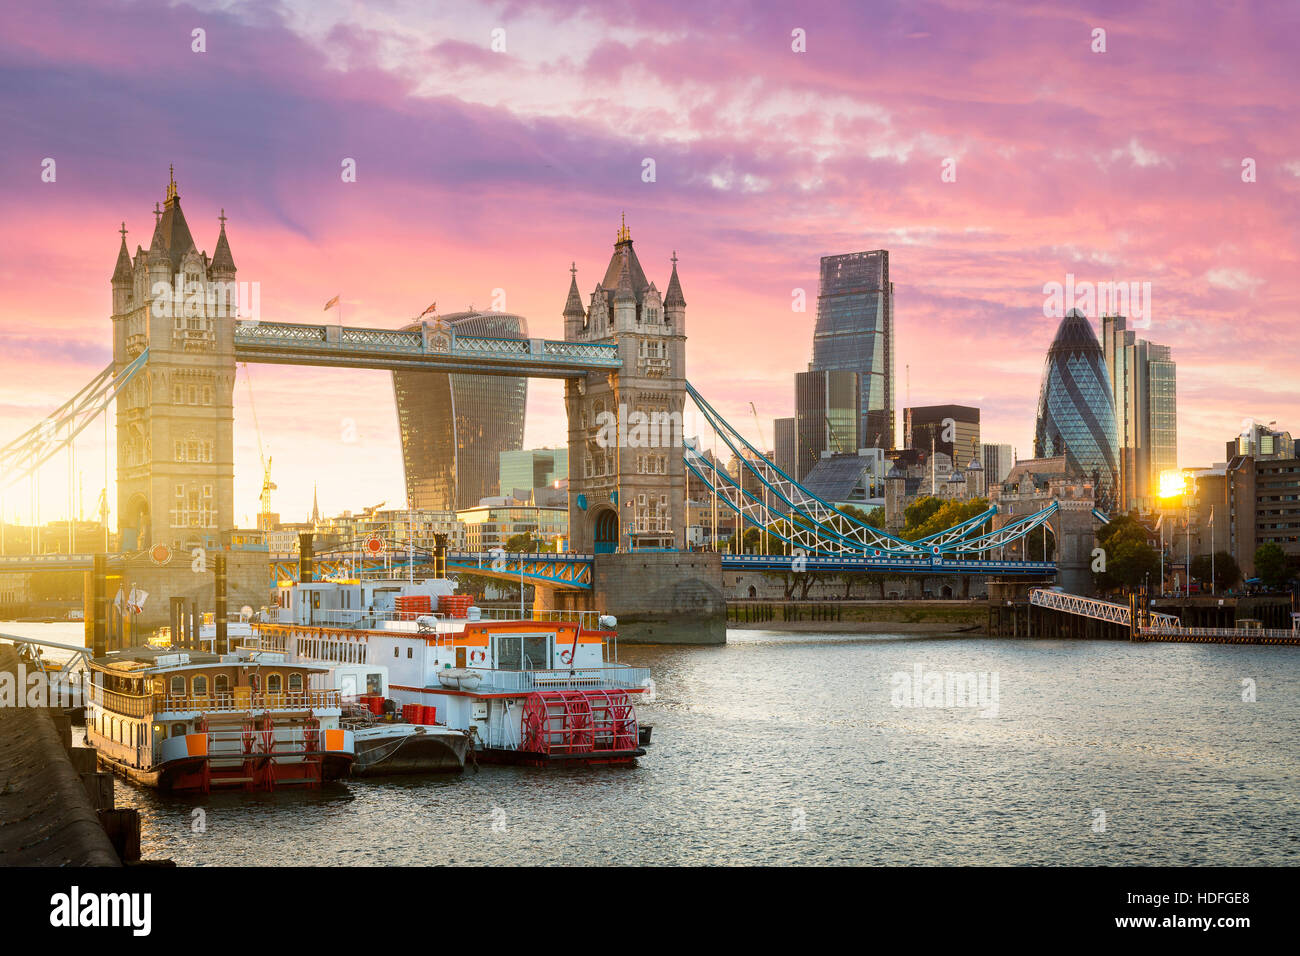 Financial District of London and the Tower Bridge at sunset - Stock Image